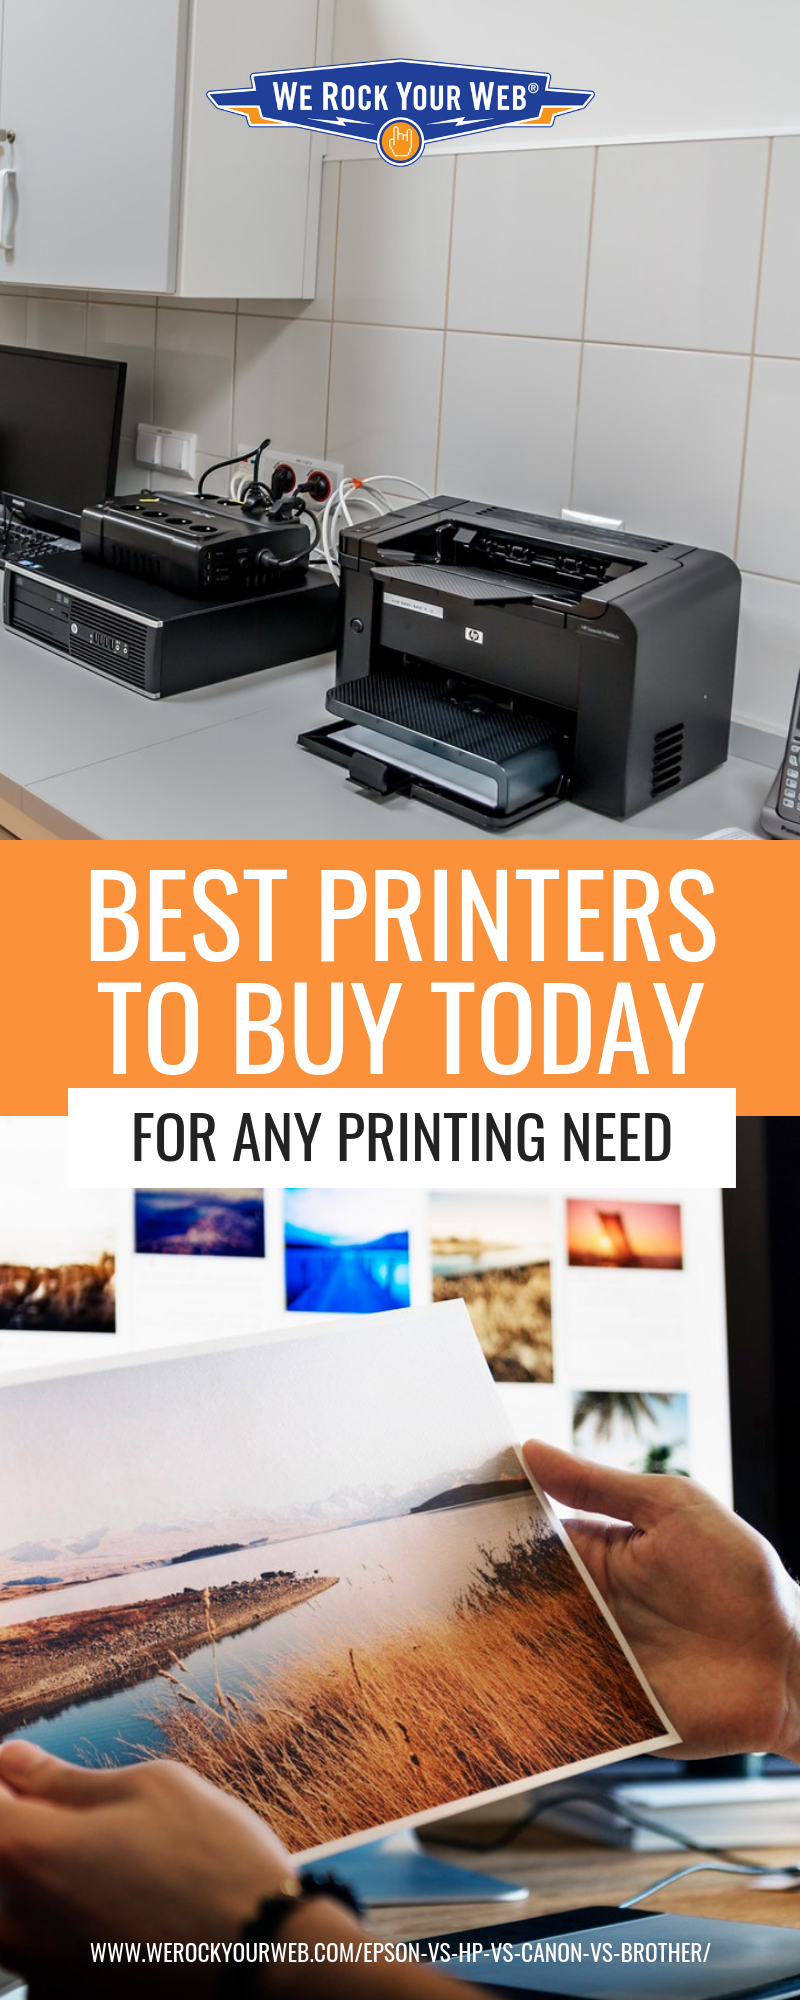 Best Printers By Type: Epson vs HP vs Canon vs Brother